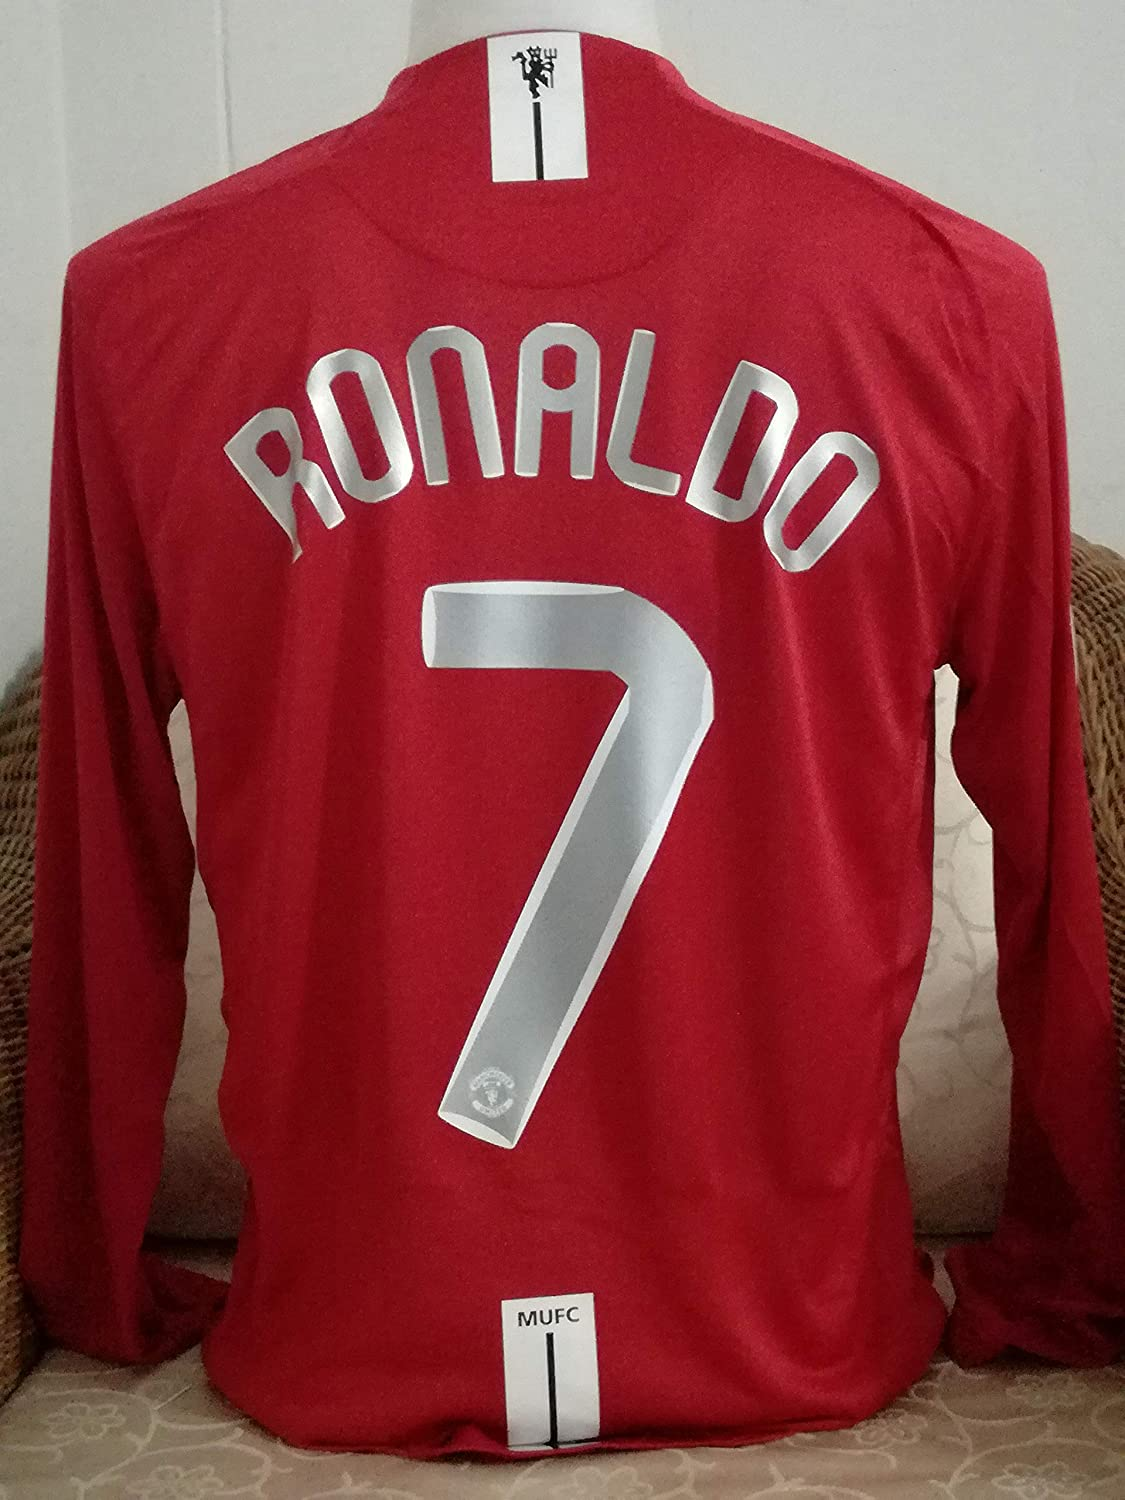 finest selection 74930 01648 Amazon.com : Retro Ronaldo#7 Manchester United Longsleeve ...